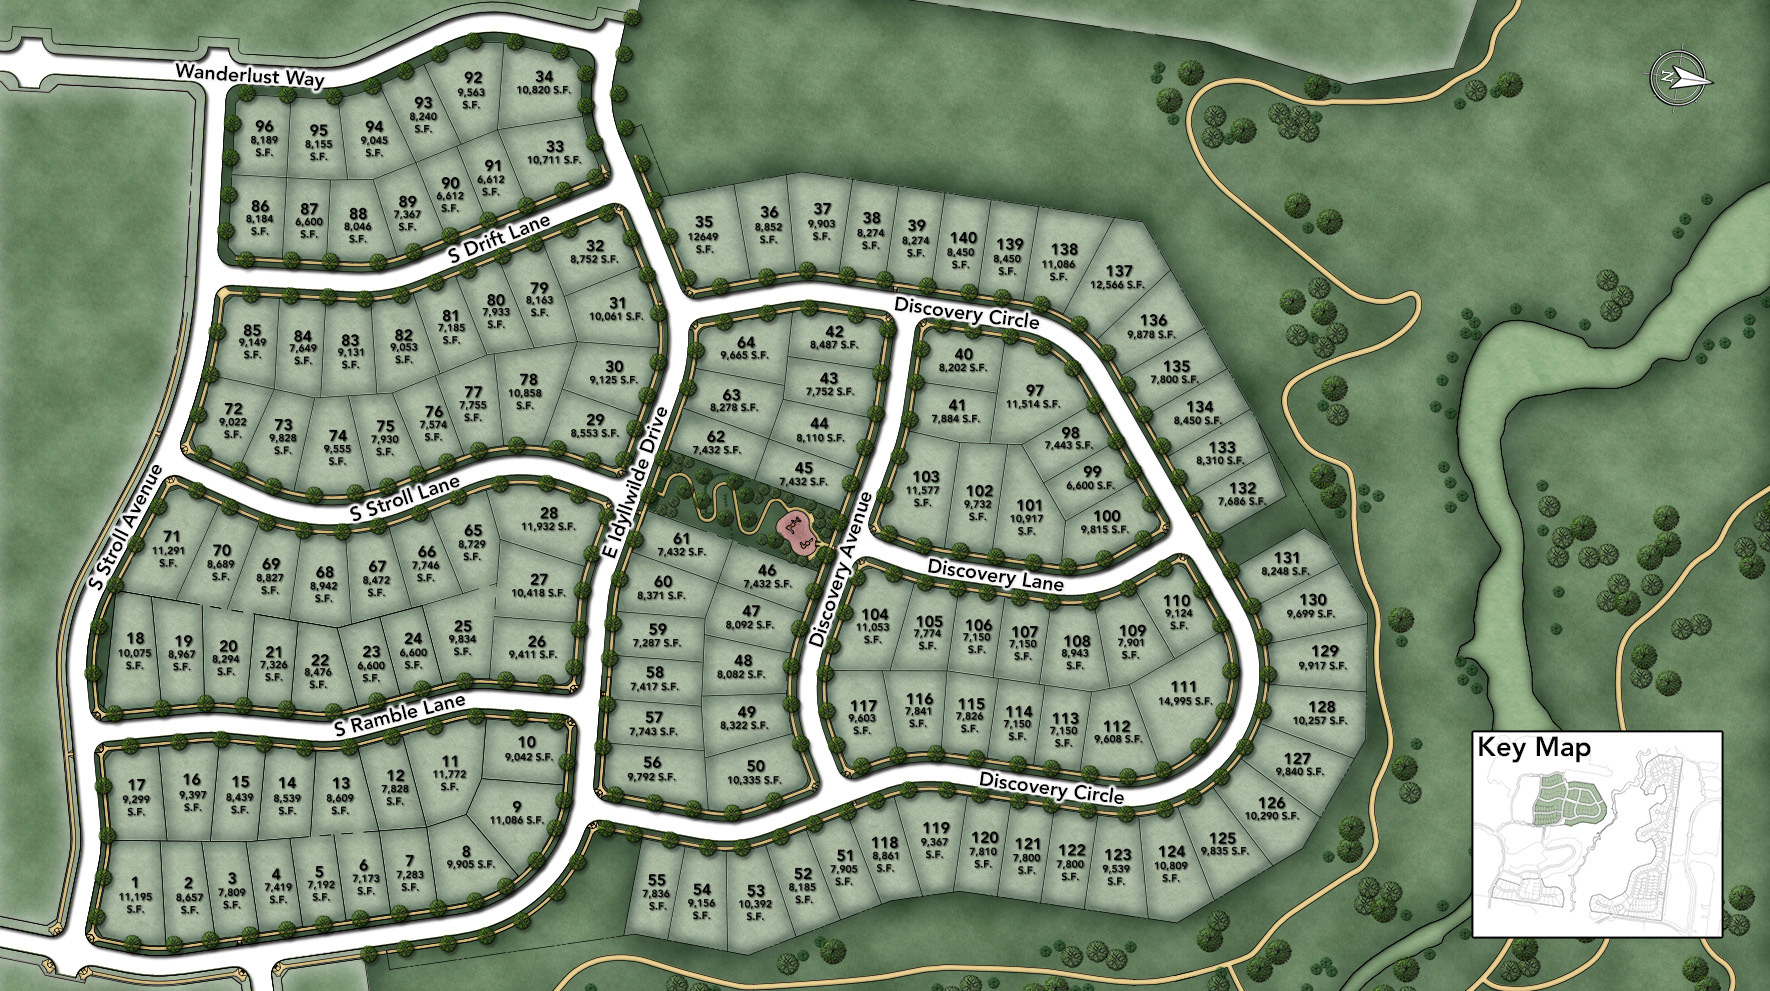 The Hills at Parker Site Plan